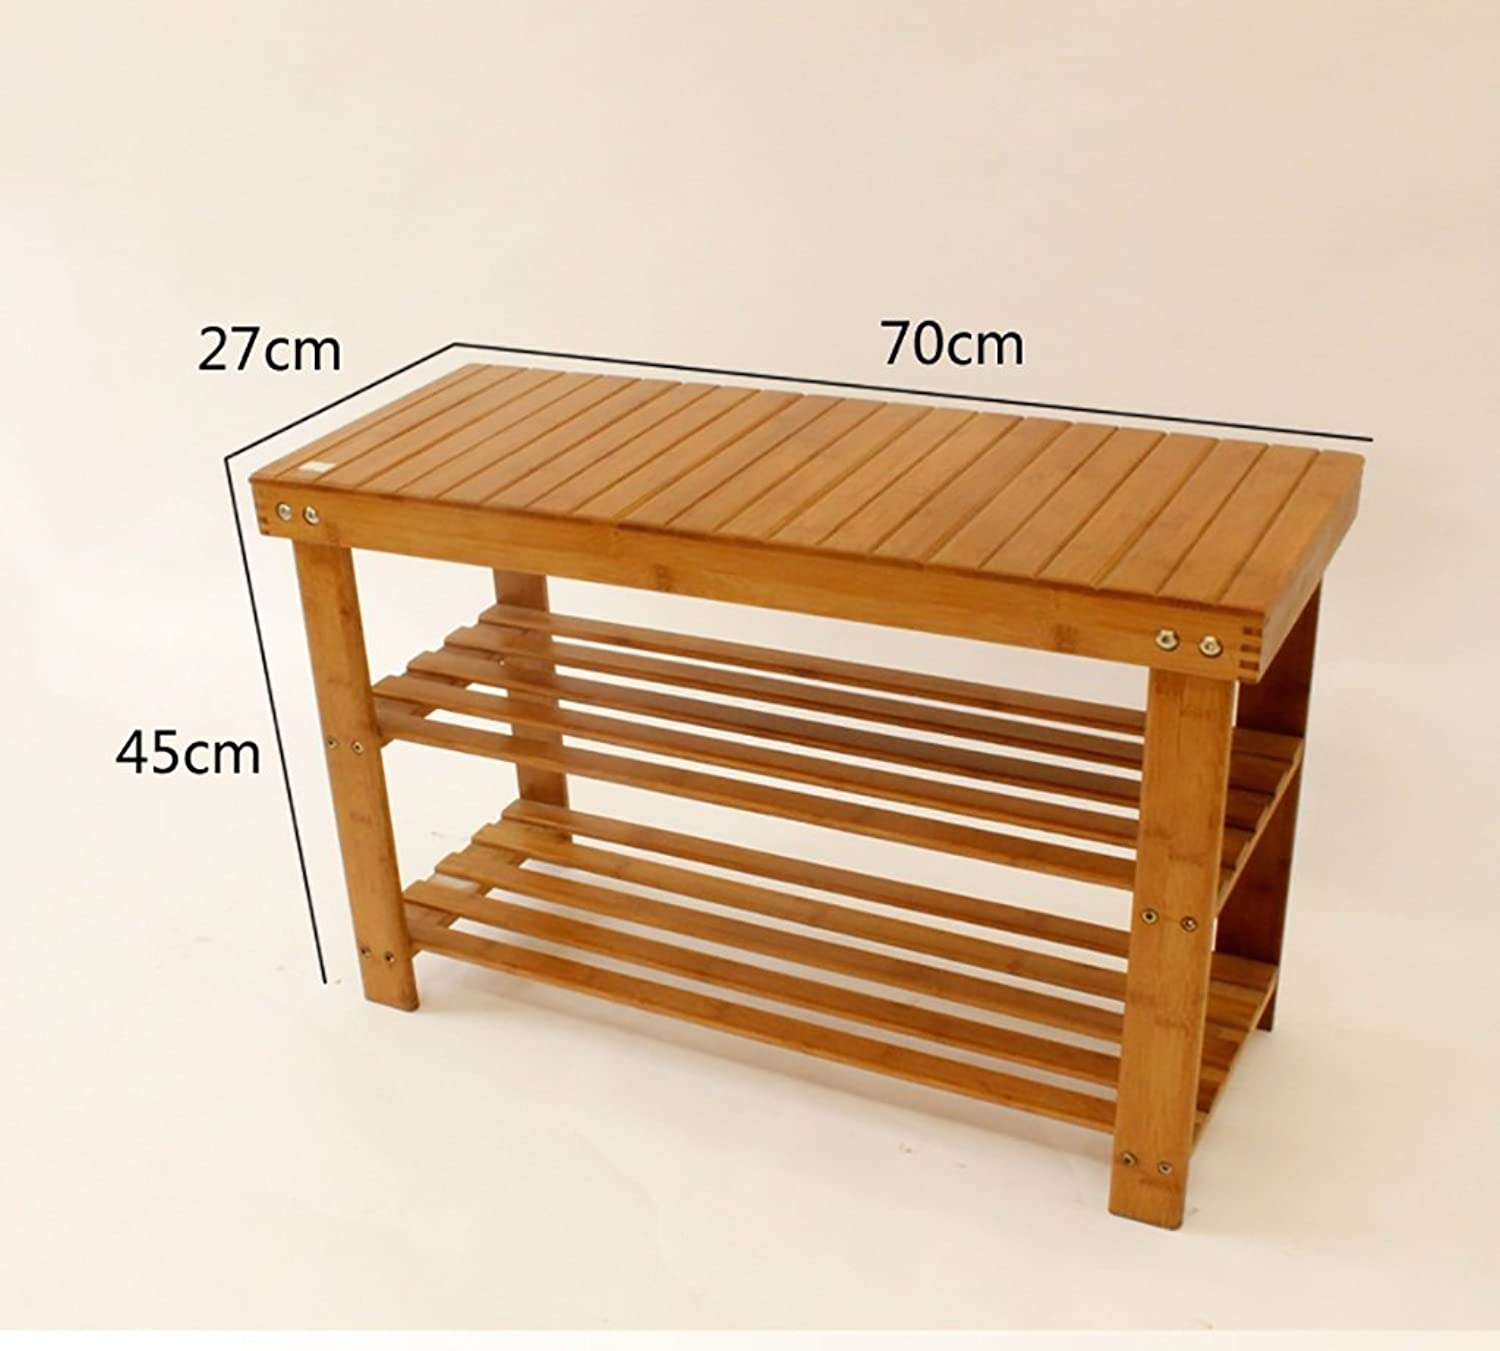 shoes Bench Organizing Rack shoes Racks Bamboo shoes Shelves Flat shoes Display Stand Home Door shoes Rack Solid Wood shoes Cabinet (Size   2-70cm)